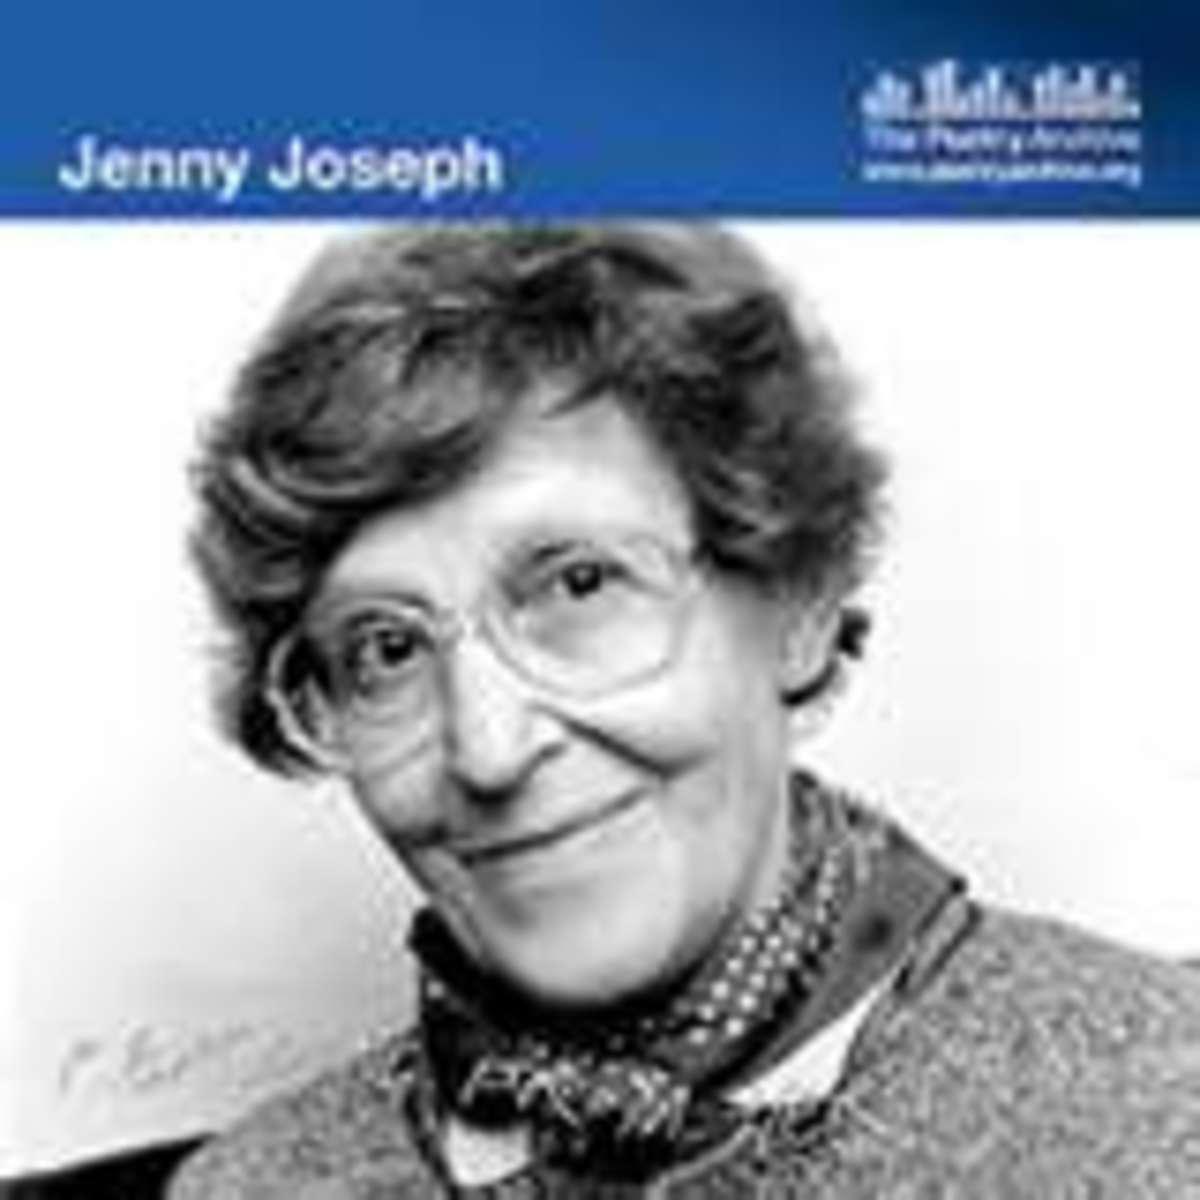 Jenny Joseph, English poetry writer and journalist, who won several awards for her works.